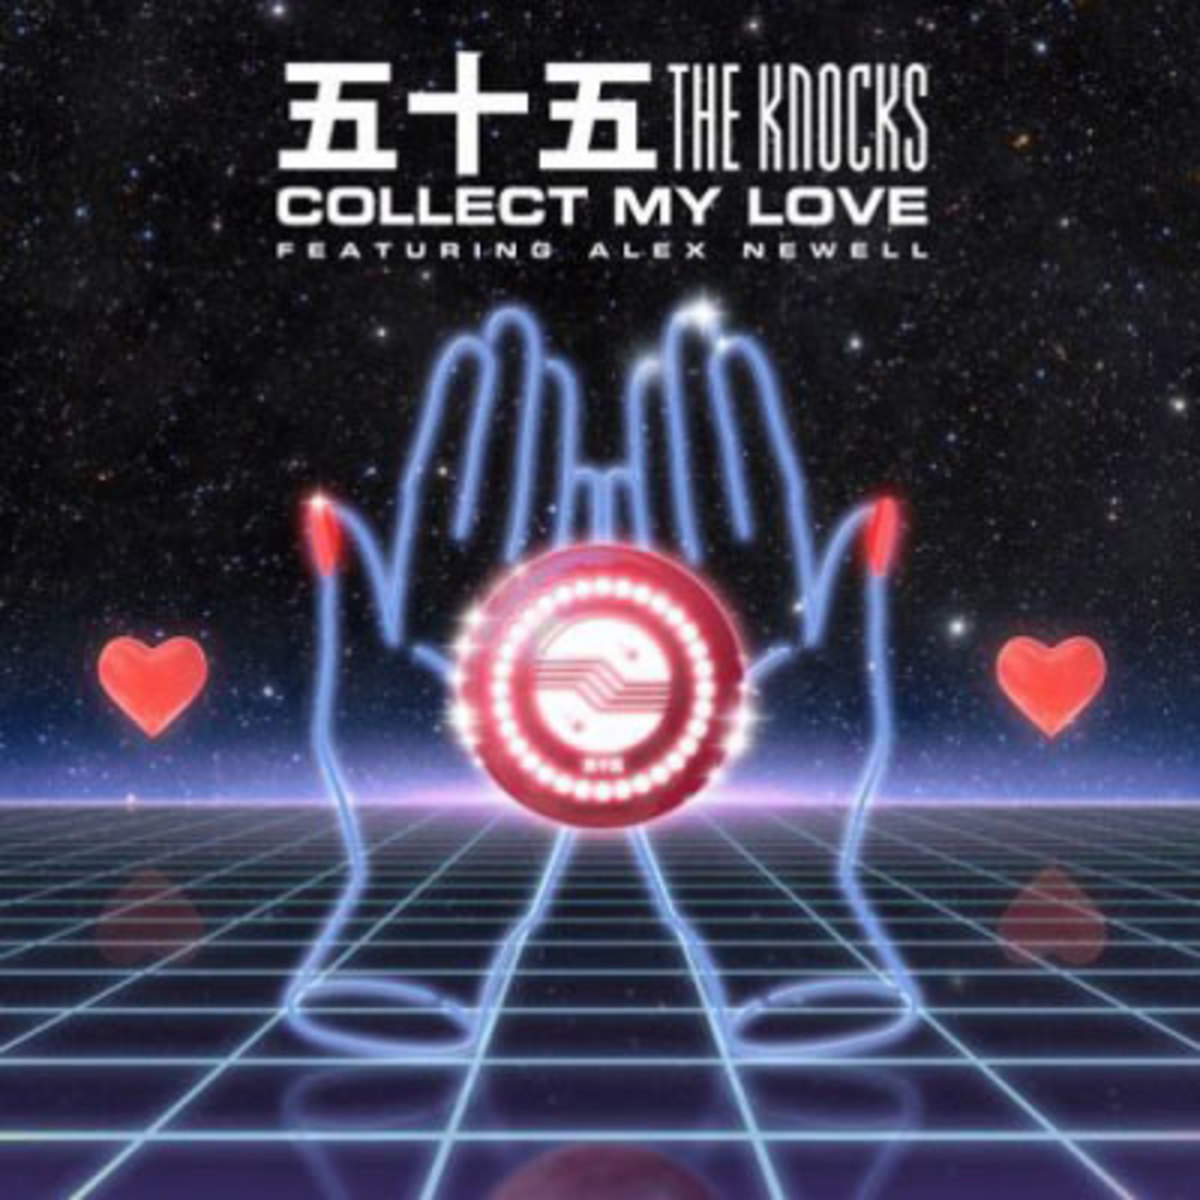 the-knocks-collect-my-love.jpg